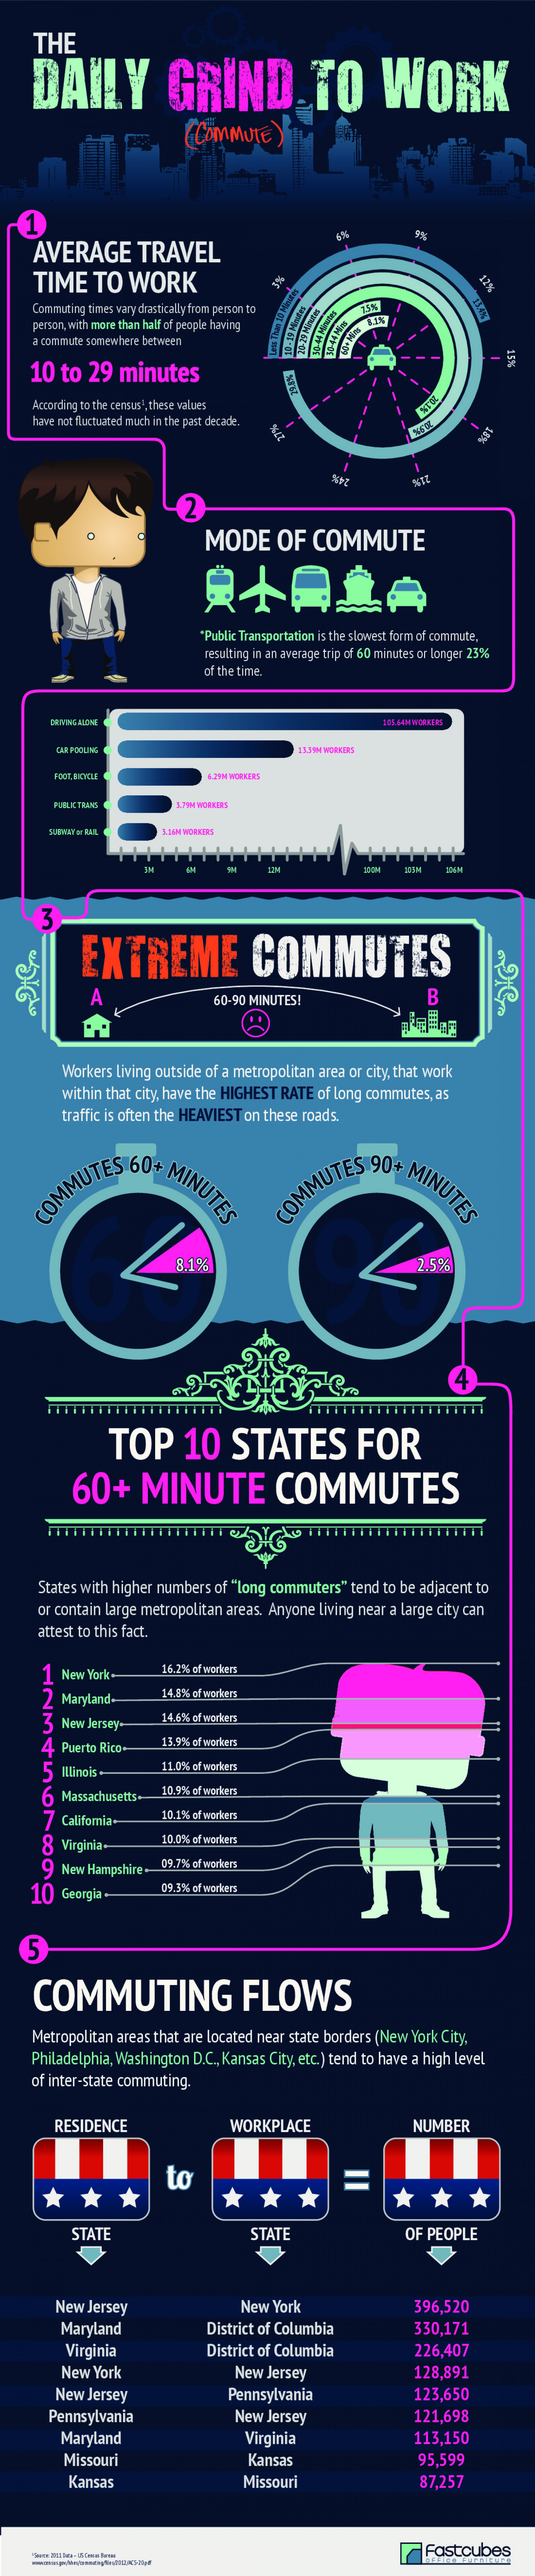 FastCubes - The Daily Grind To Work Infographic